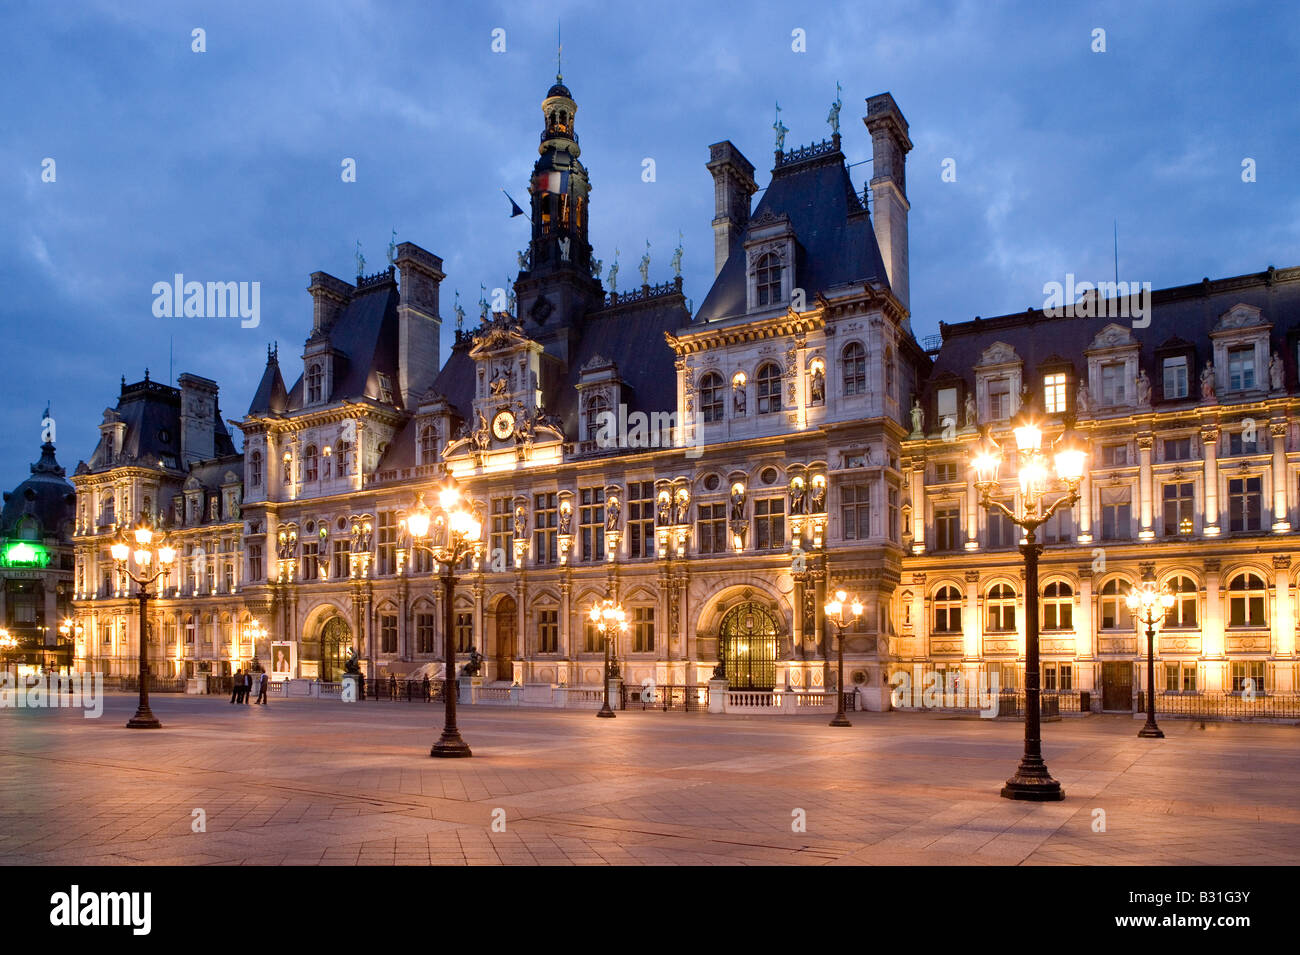 Hotel De Ville De Paris Construction